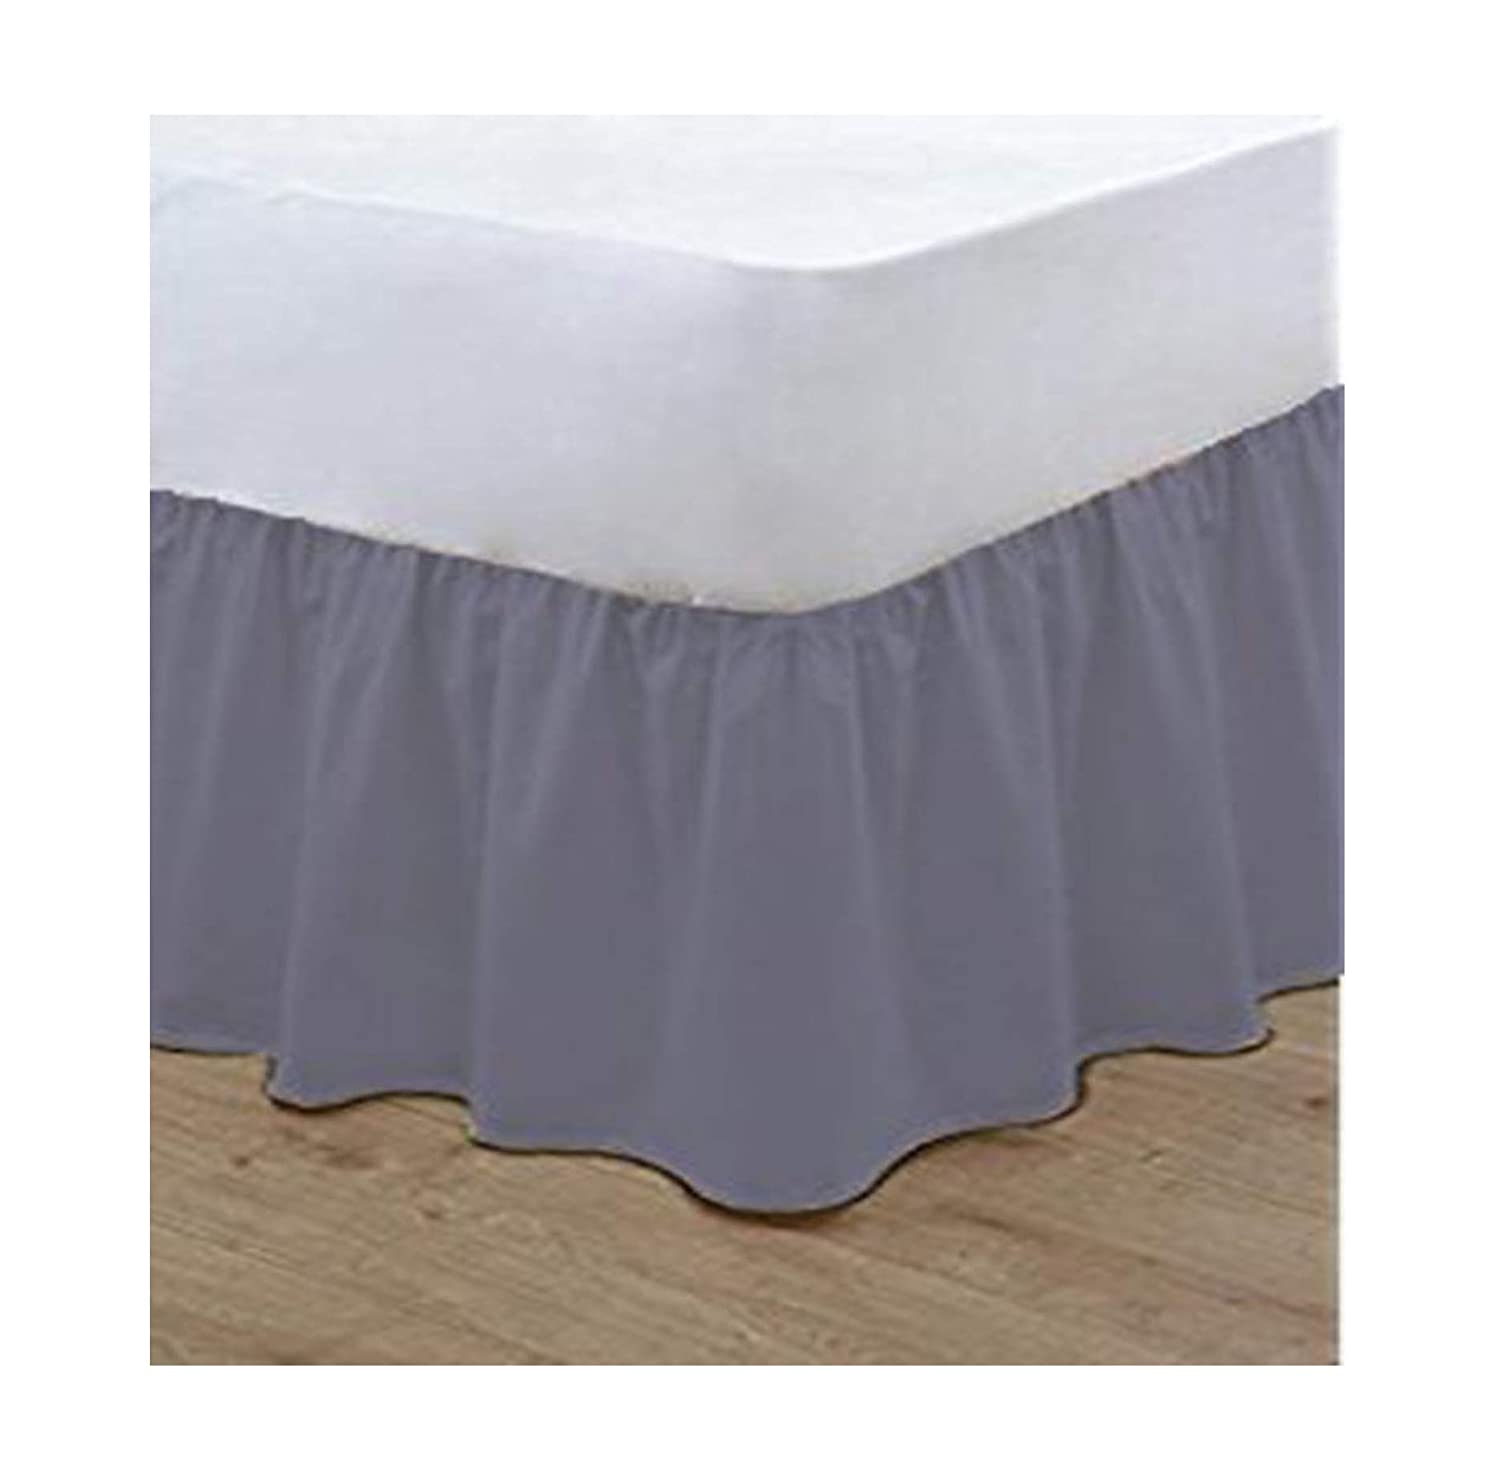 nz Plain Dyed Poly Cotton Soft Frilled Base Valance Sheets Bed Sheets Covers Single, Mid Blue